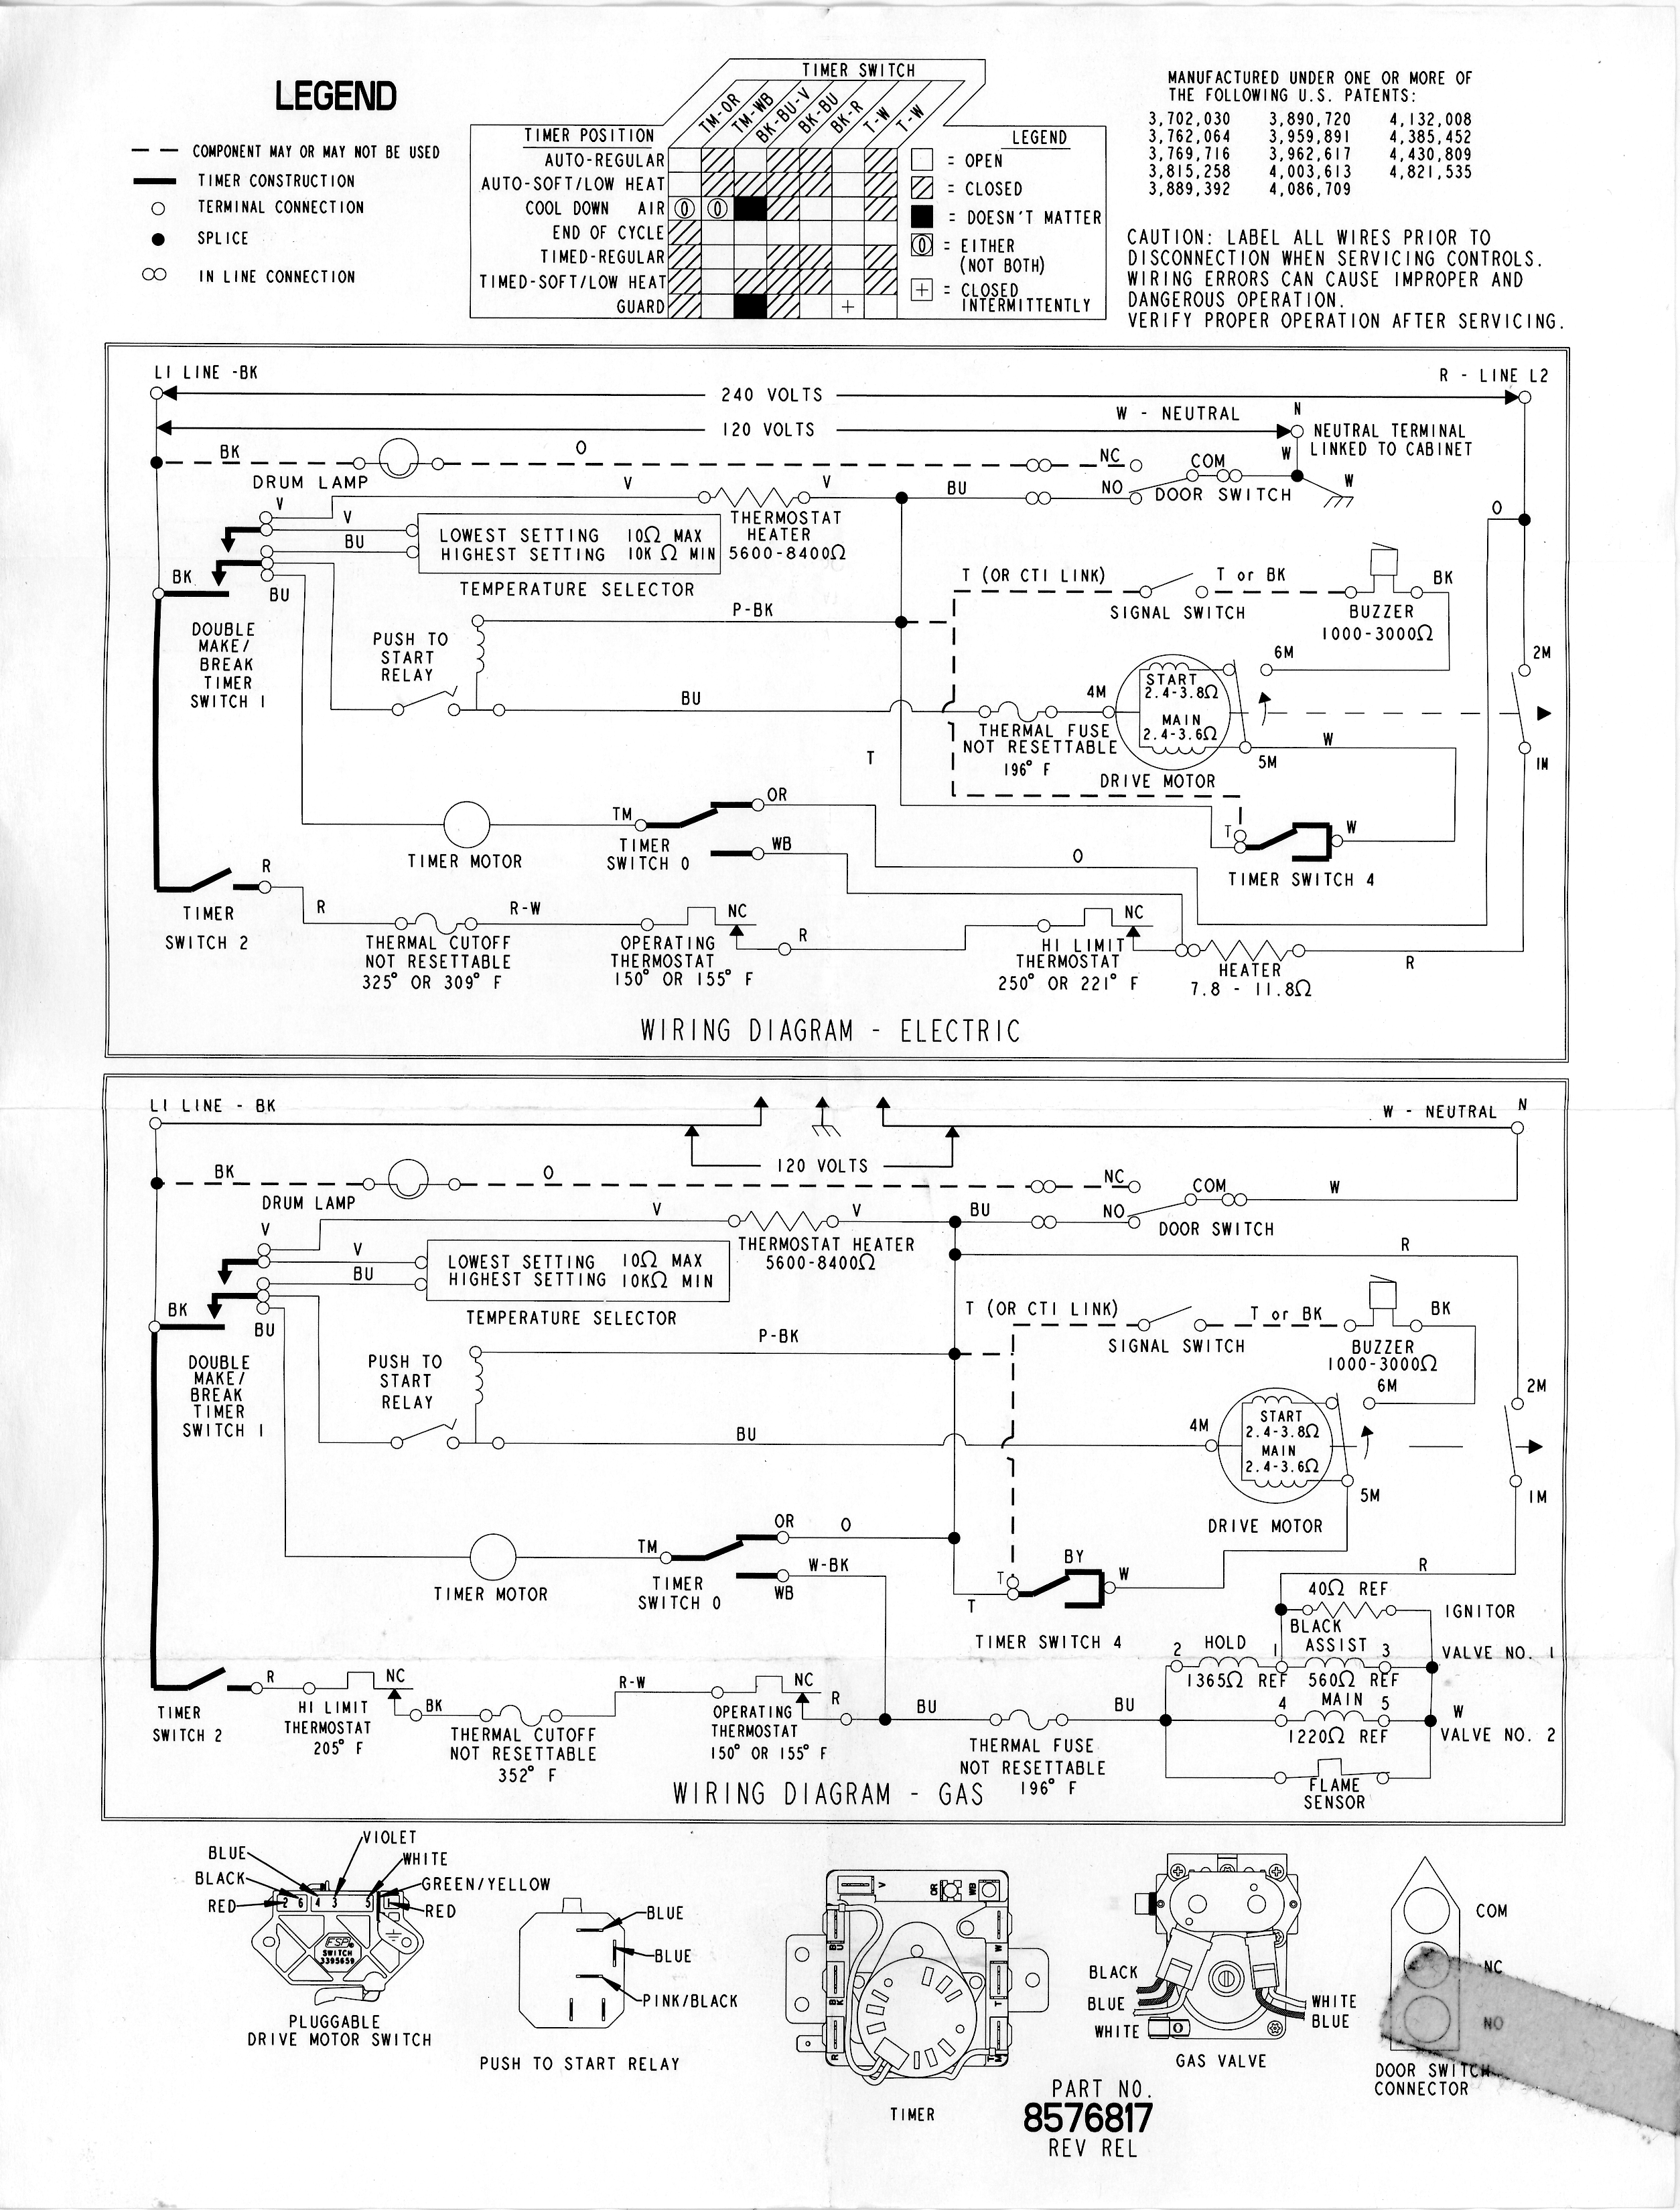 Whirlpool Clothes Dryer Schematic : Whirlpool : Free Download, Borrow, and  Streaming : Internet Archive